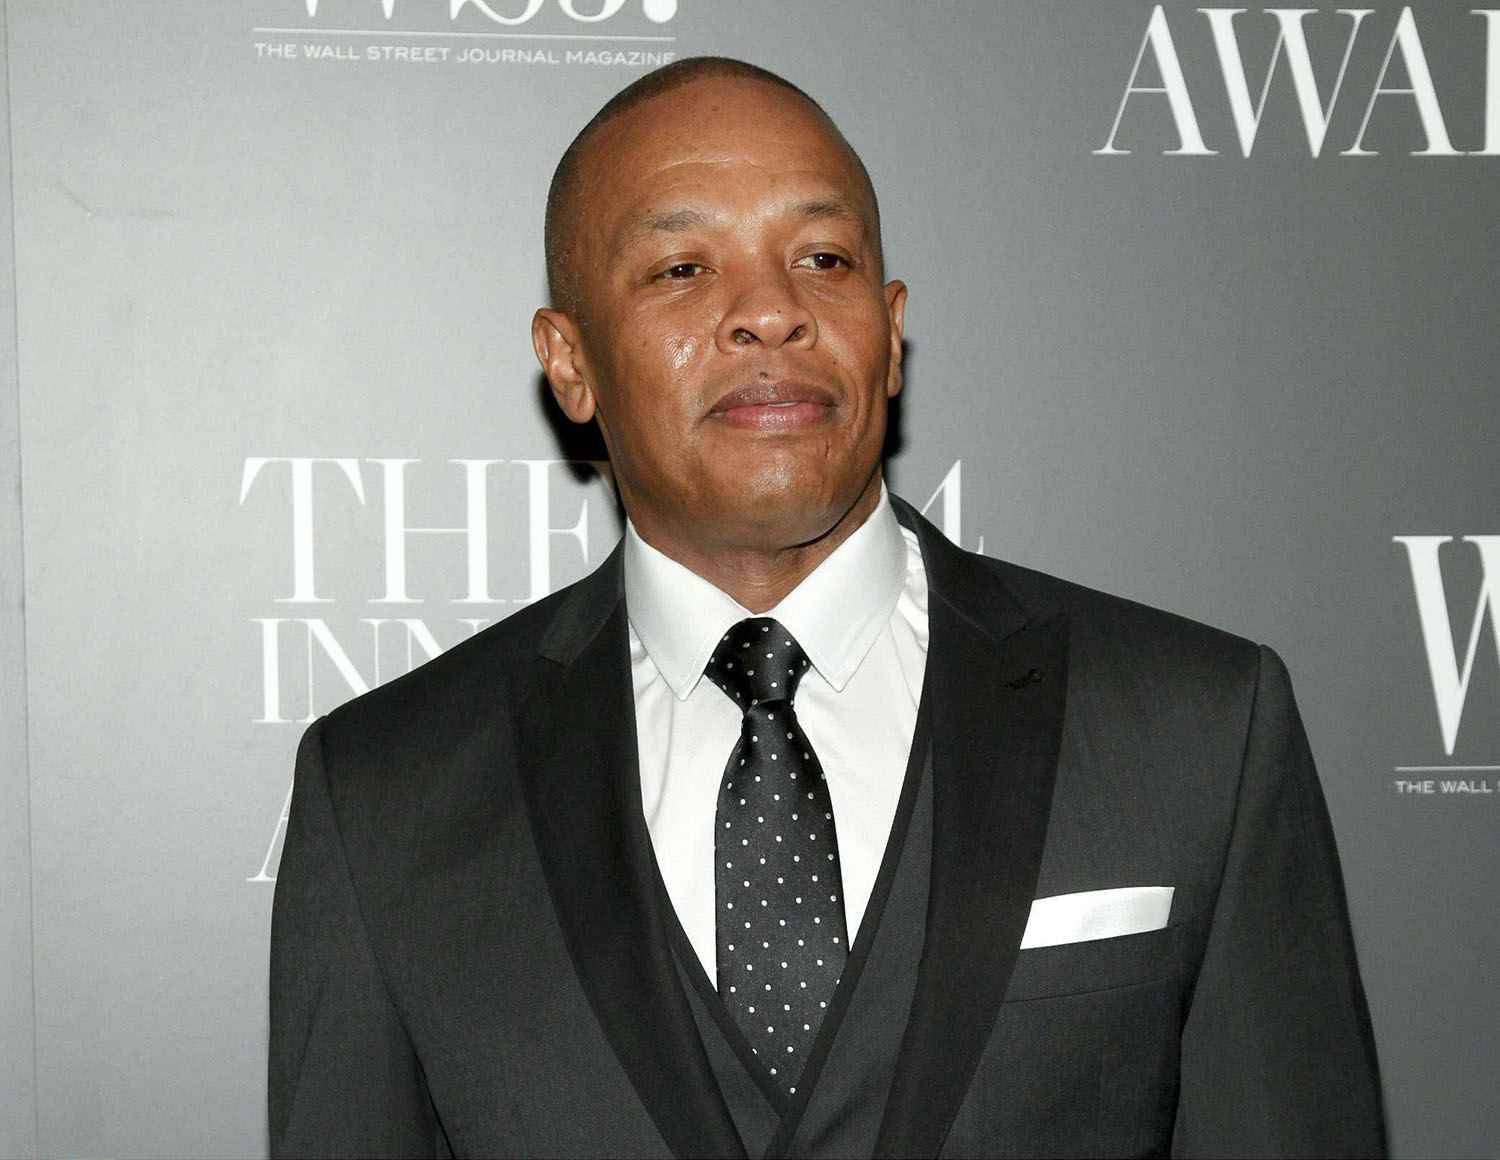 dr dre also known as dre